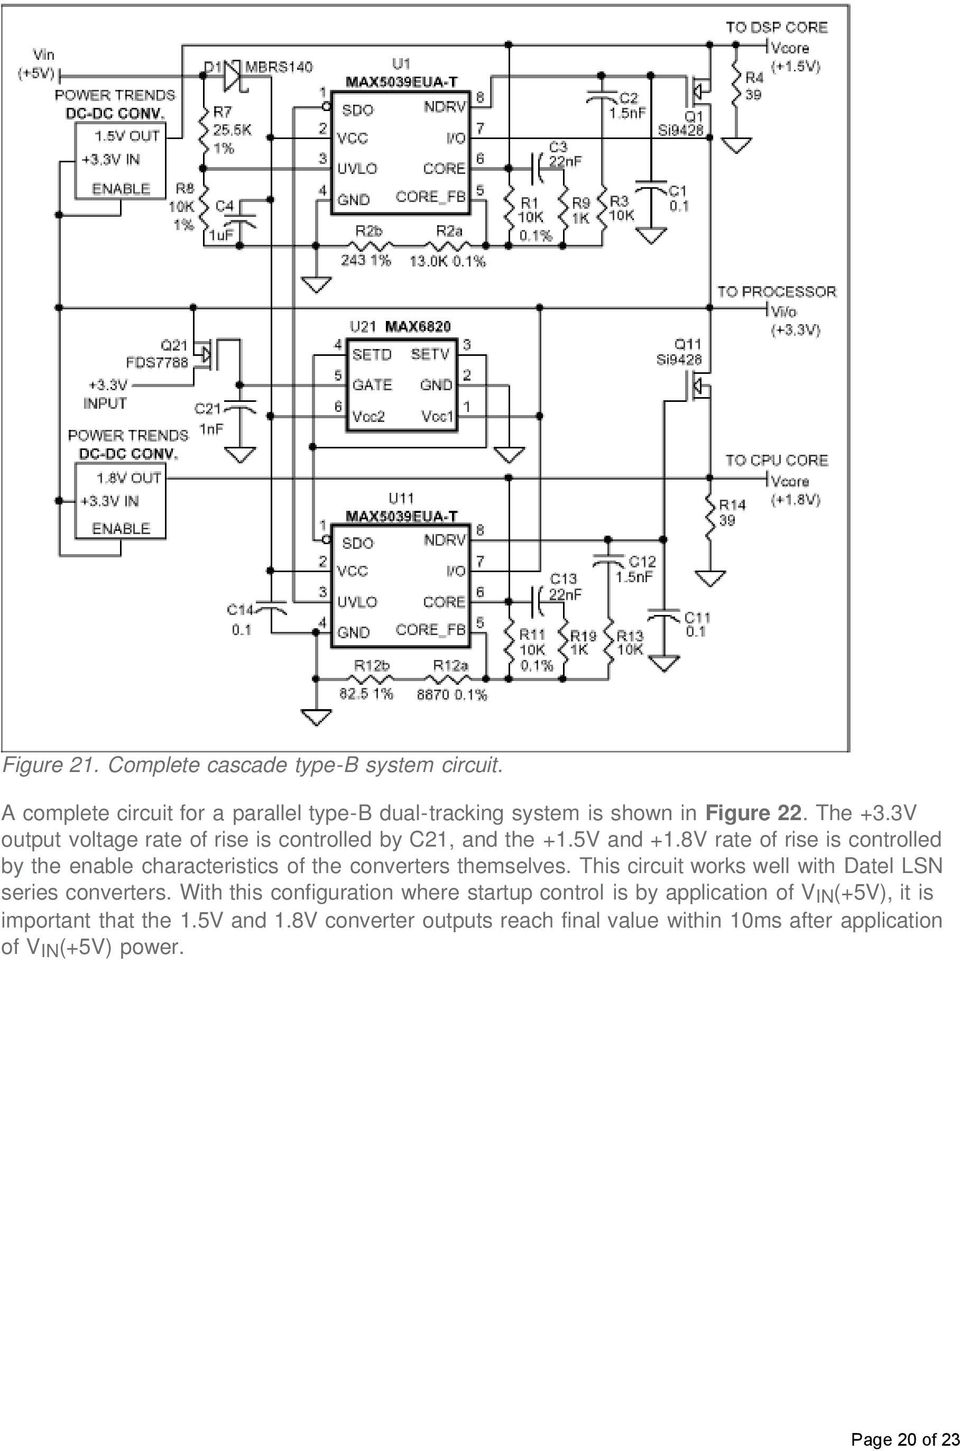 Voltage Tracking Requirements Pdf Circuit Of Lm339 Motorcontrol Controlcircuit Diagram 8v Rate Rise Is Controlled By The Enable Characteristics Converters Themselves